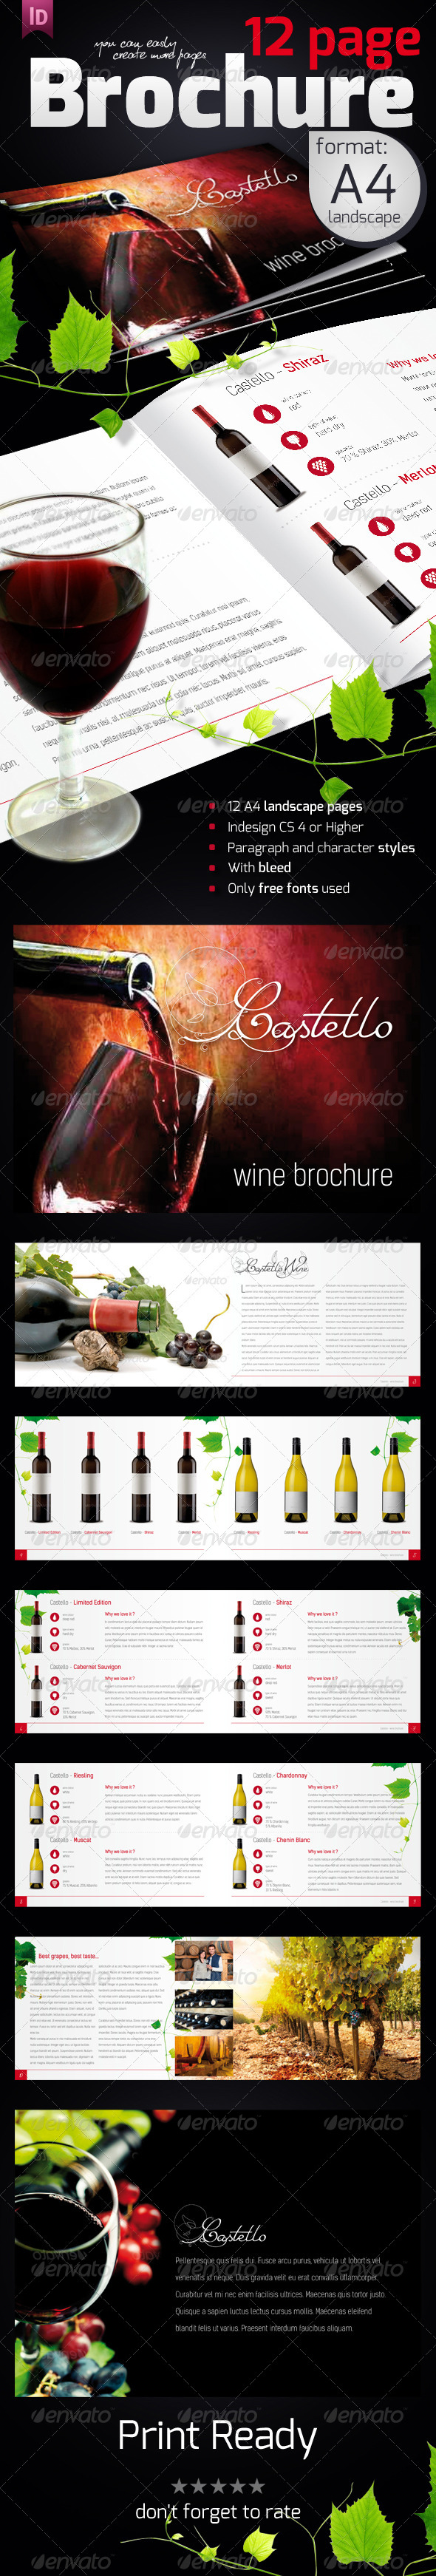 Wine catalog indesign template stock for Wine brochure template free